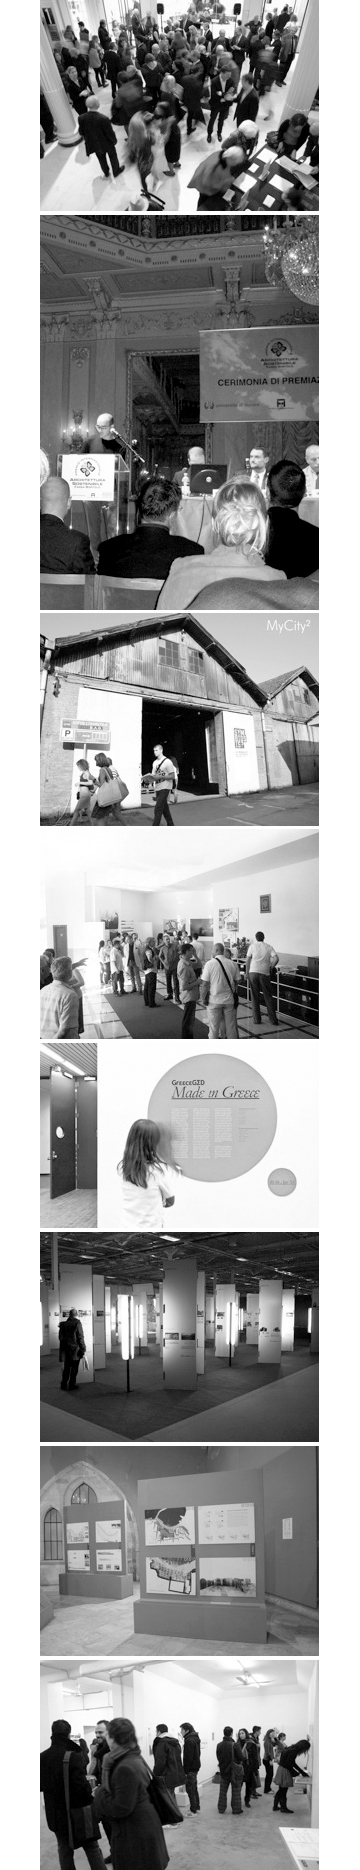 exhibitions bw.jpg